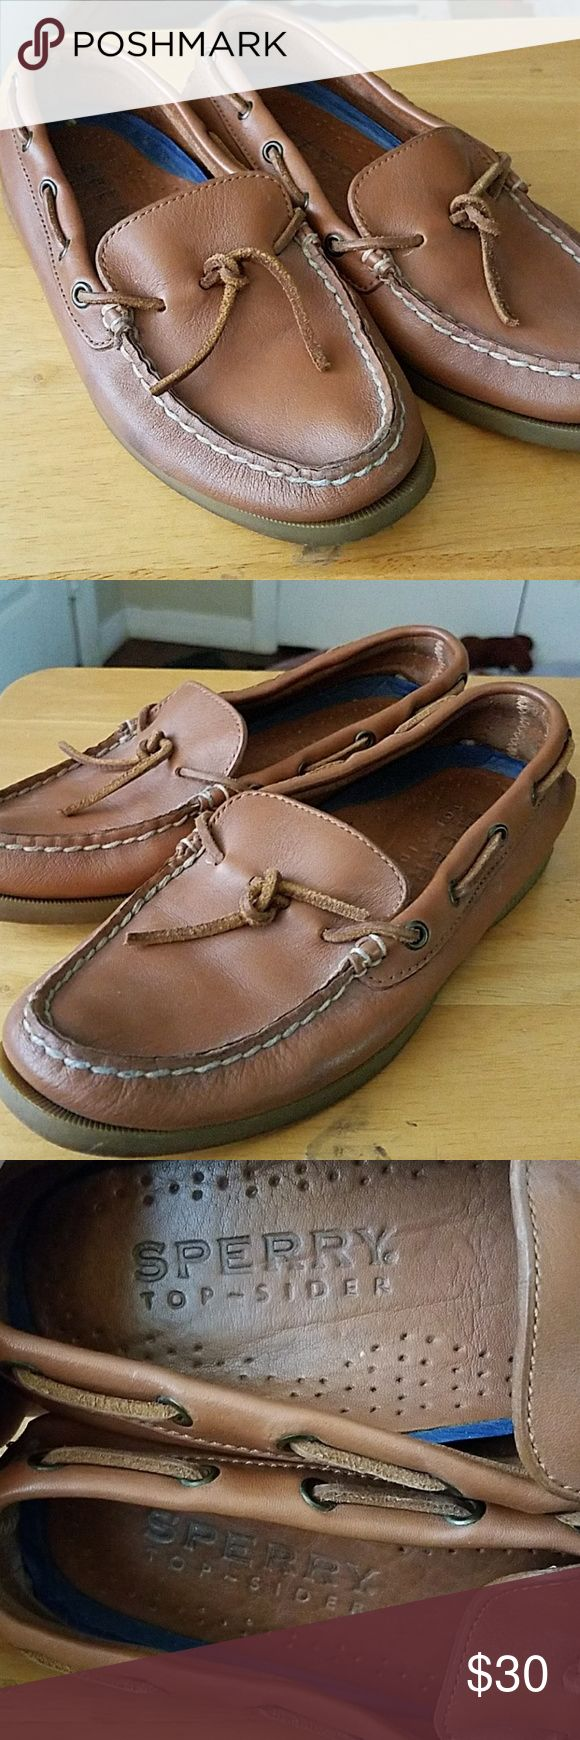 Sperry ladies top siders ladies in size 7 Sperry classic top Siders in size 7. These are in great condition no issues at all. Light brown leather finish. Sperry Top-Sider Shoes Flats & Loafers